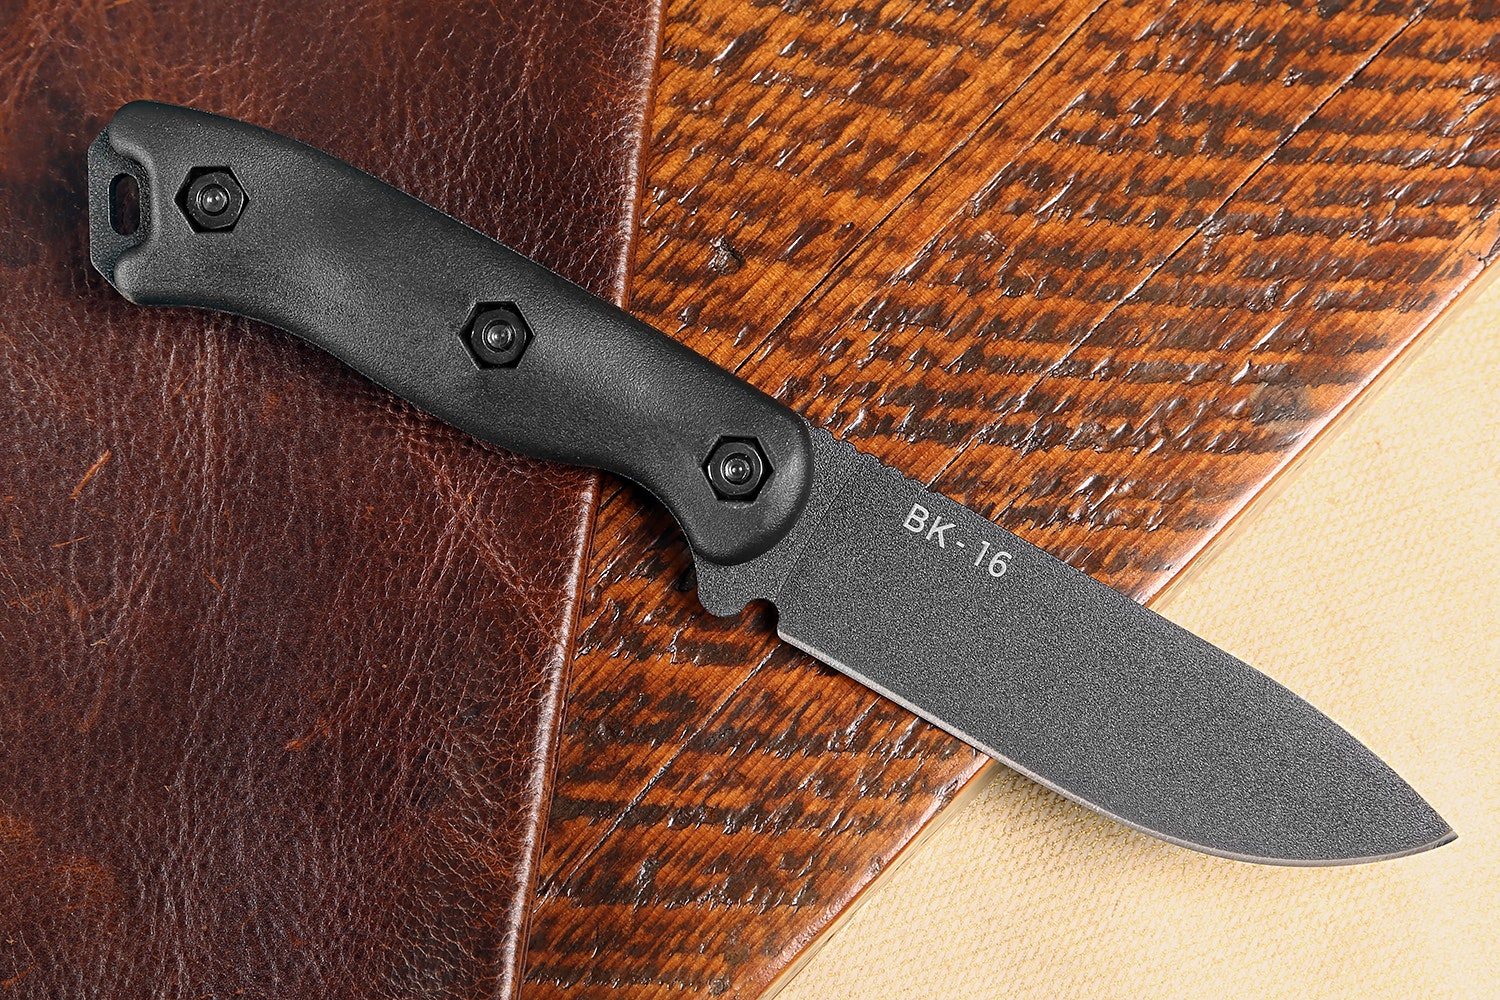 KA-BAR Becker BK16 Short Drop Point Survival Knife